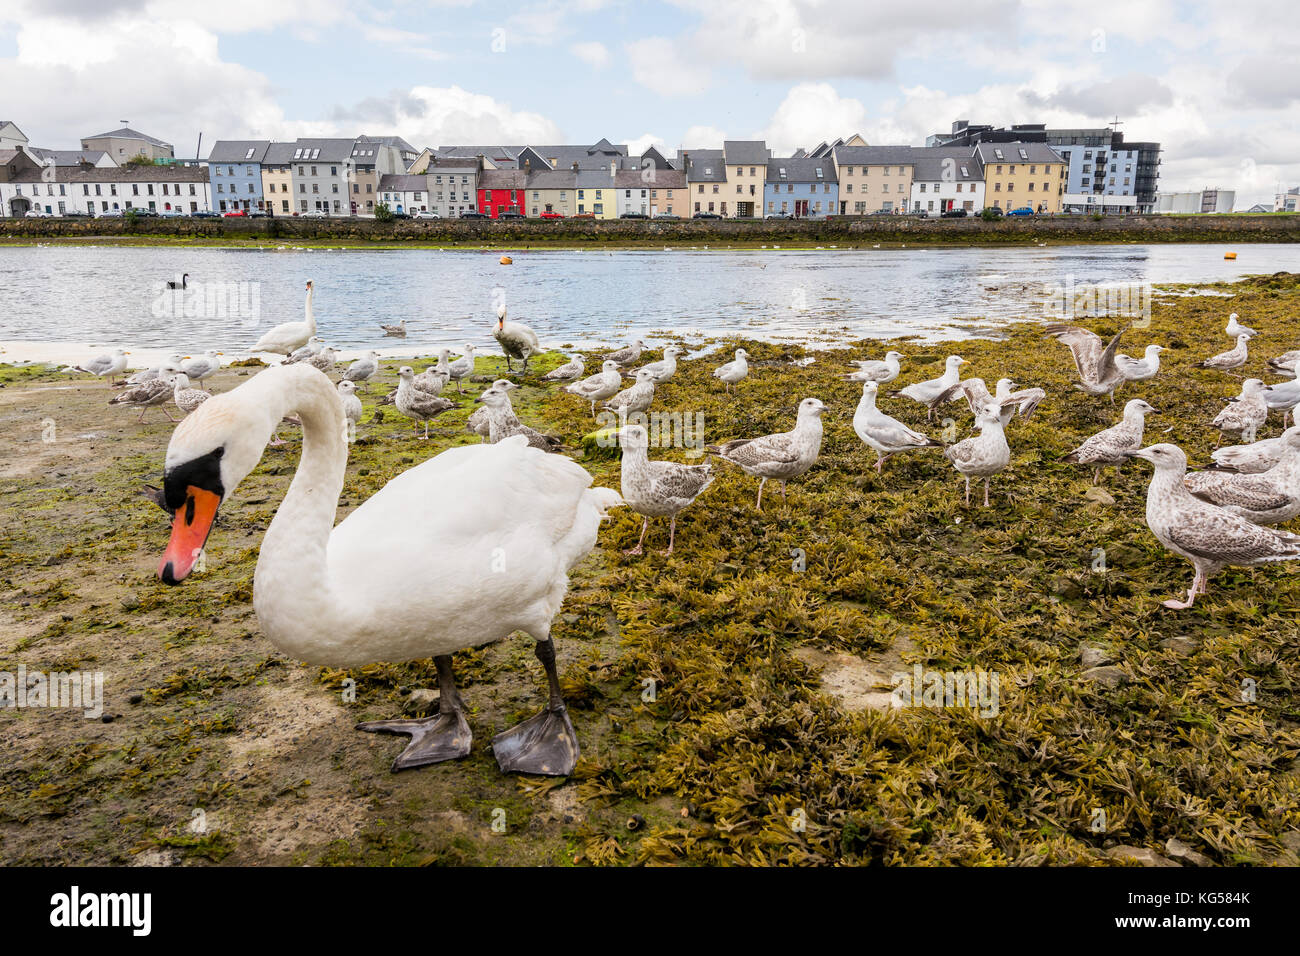 Landascapes of Ireland. Galway city and Corrib river - Stock Image